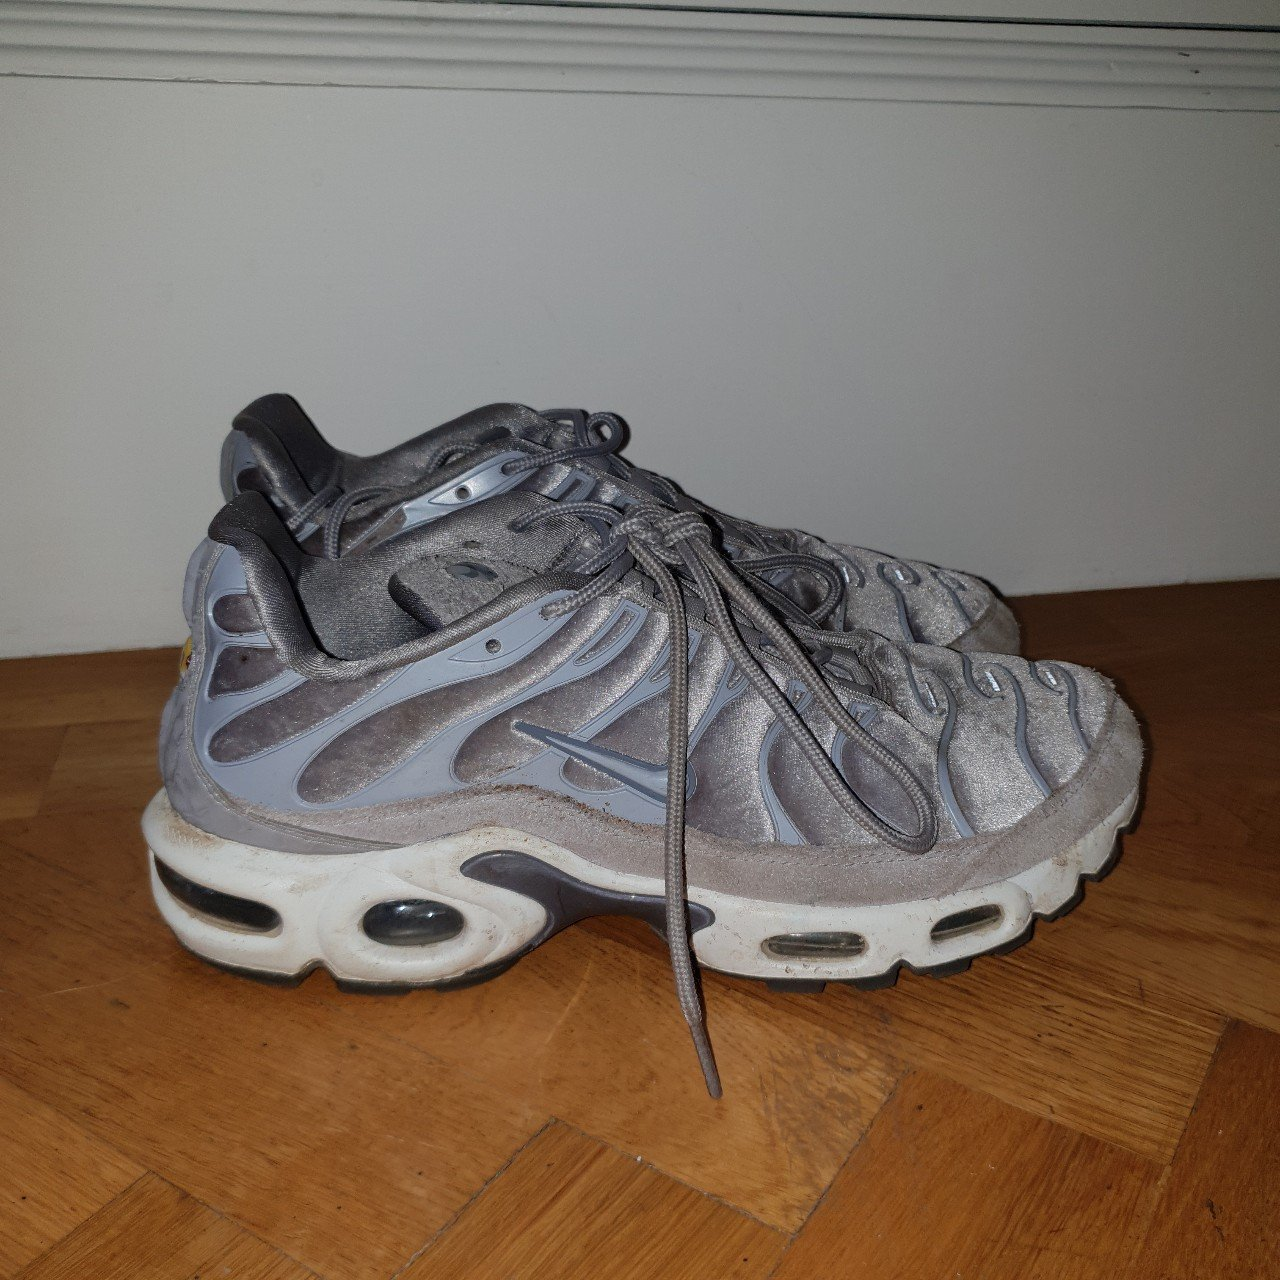 0d0f9f8197 DO NOT BUY ON HOLD #springsale Nike air max plus TN LX in a - Depop